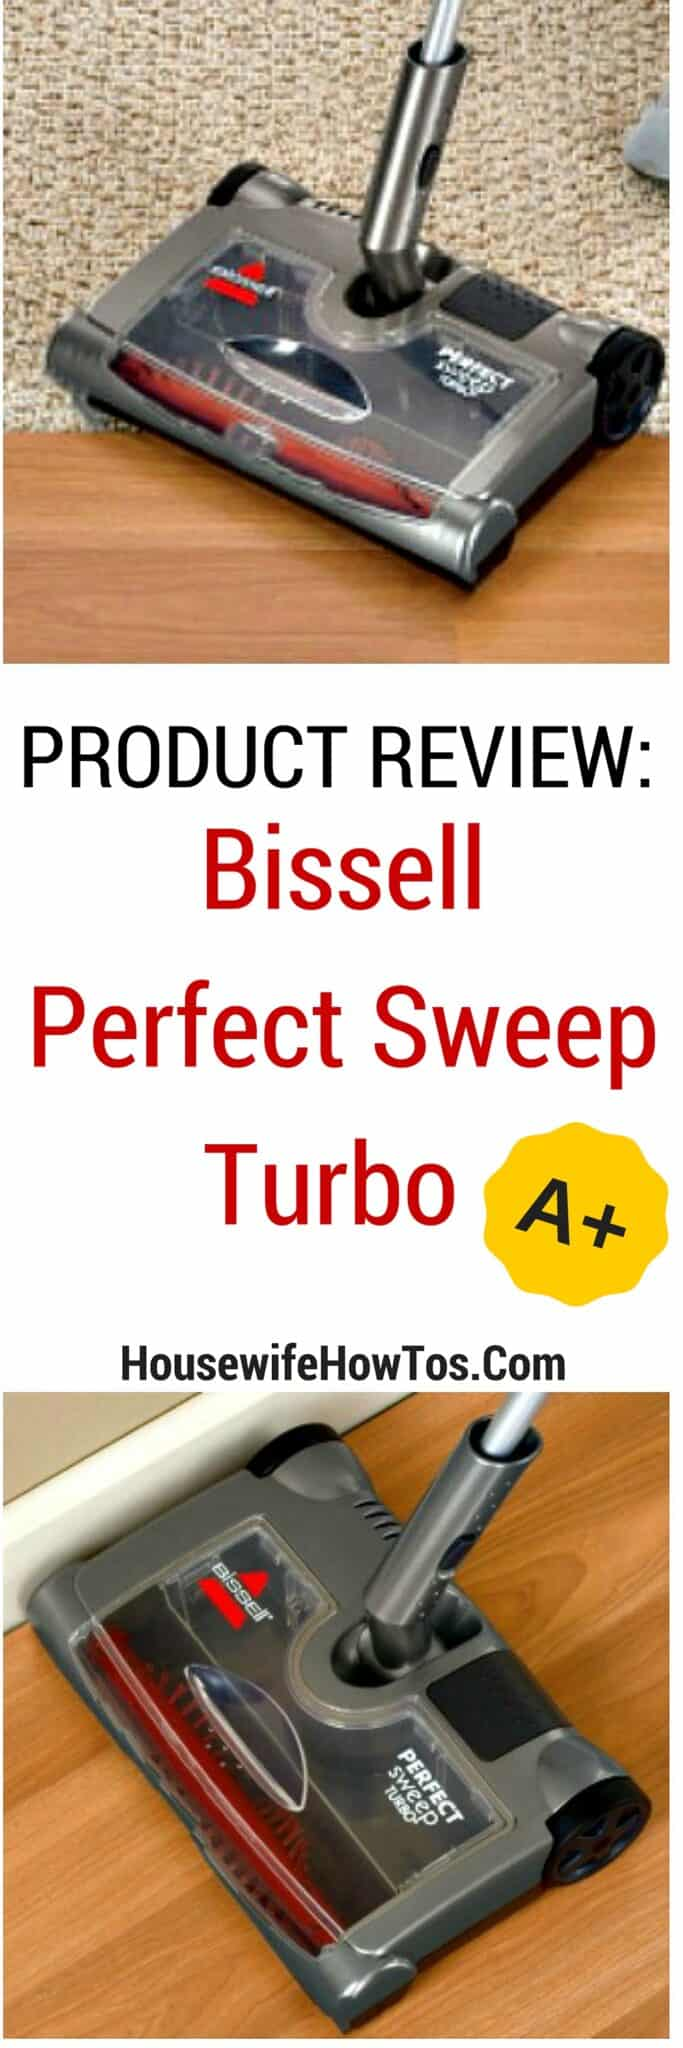 Pin Bissell Perfect Sweep Turbo Product Review